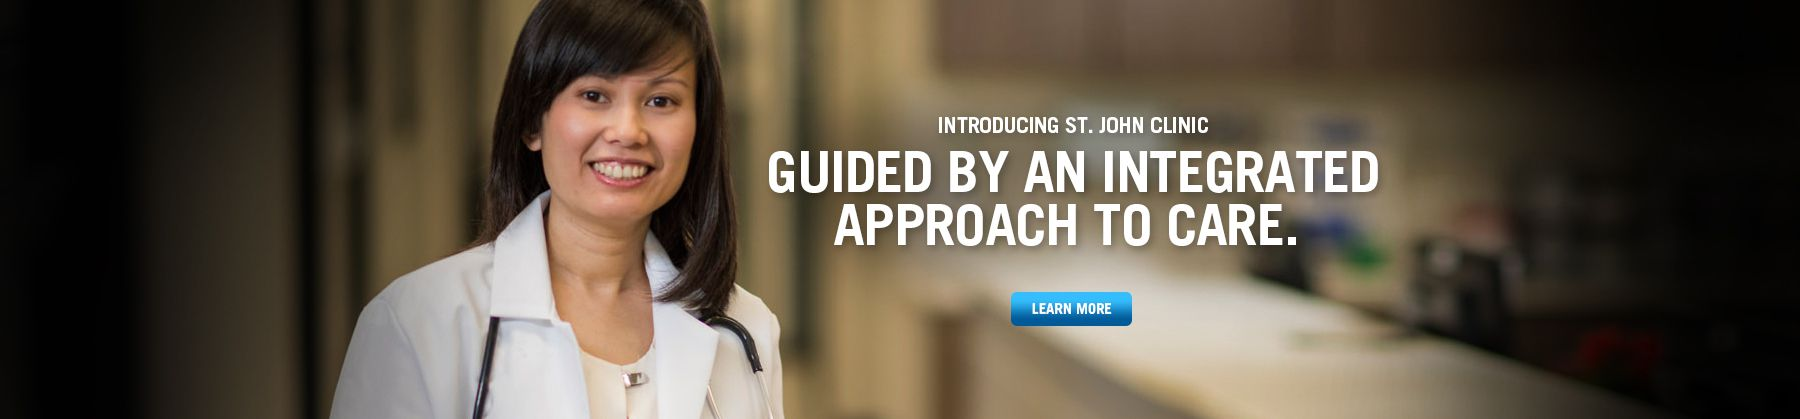 Guided by an integrated approach to care